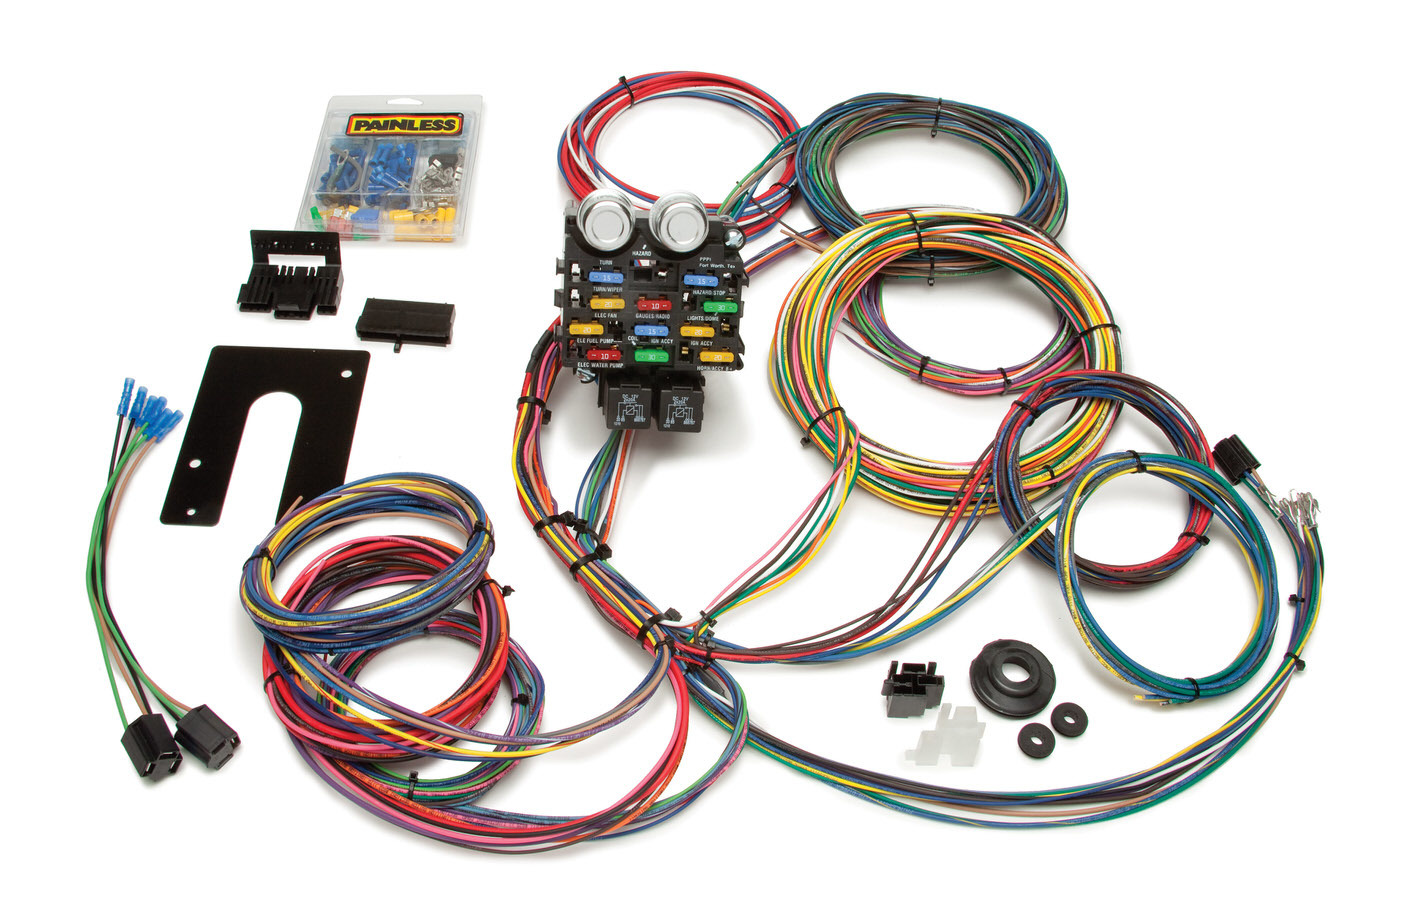 Painless Wiring 50002 Car Wiring Harness, Pro Street, Complete, 21 Circuit, Universal, Kit